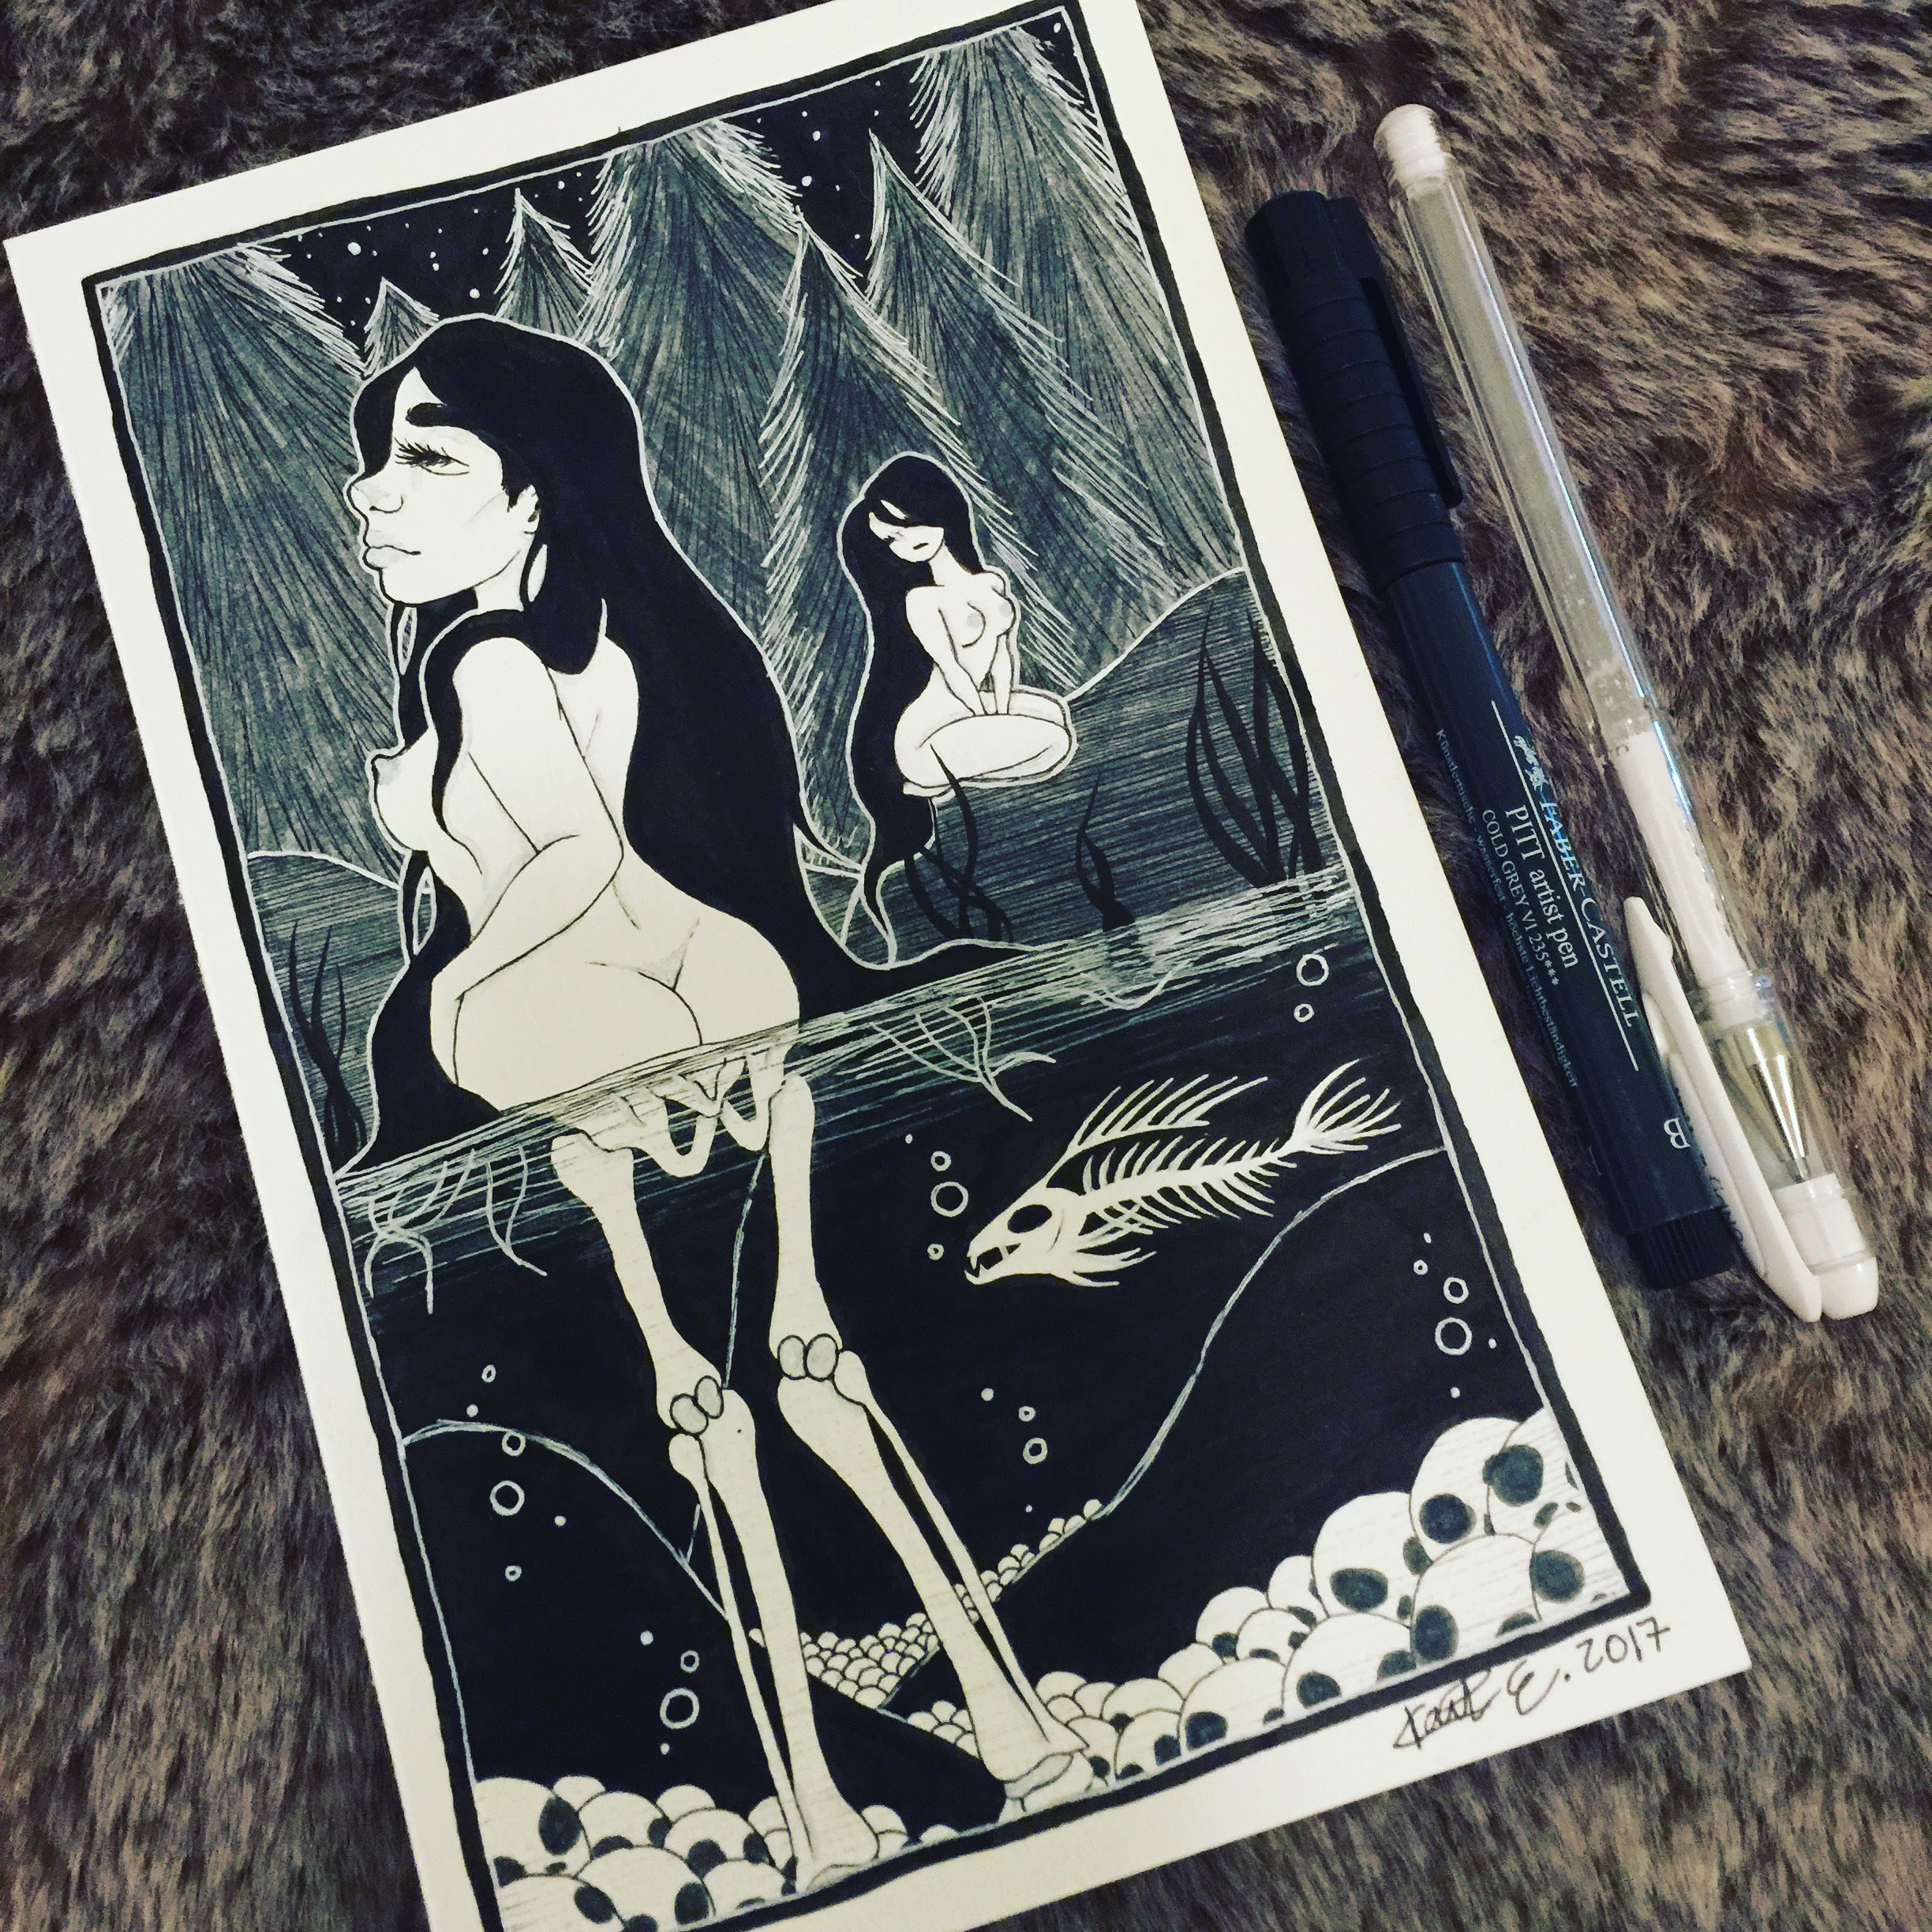 Day 14: The Rusalka